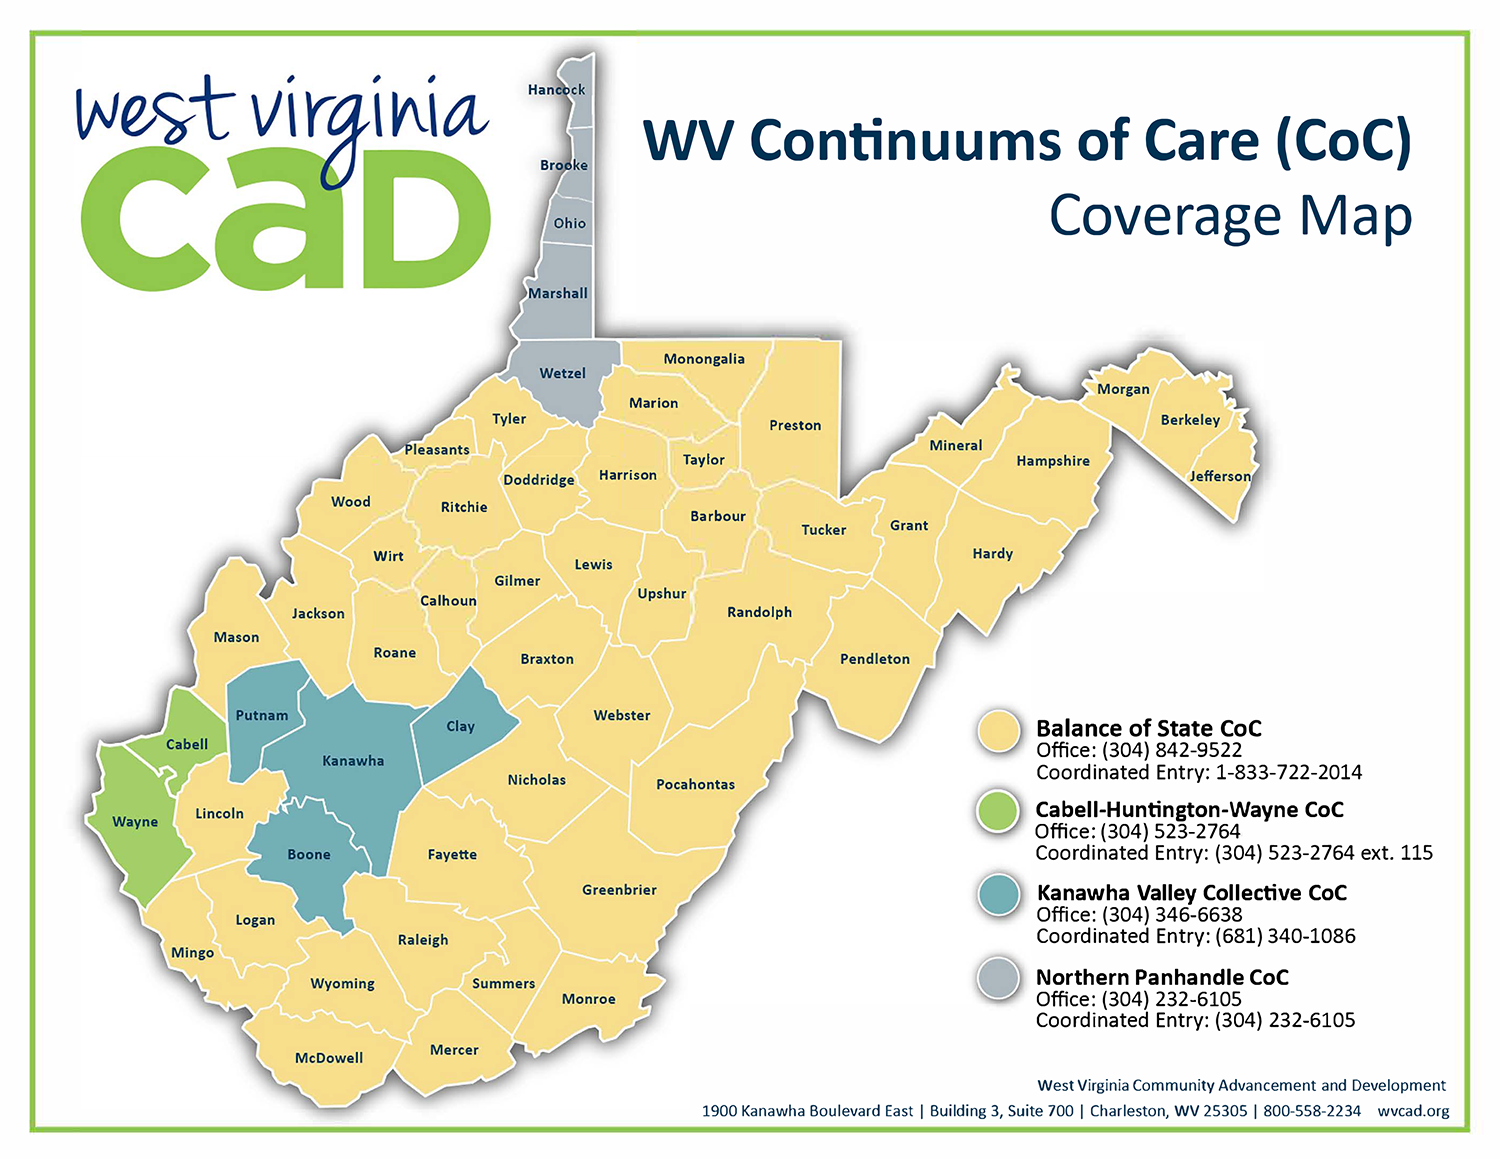 WV Continuums of Care (CoC) Coverage Map